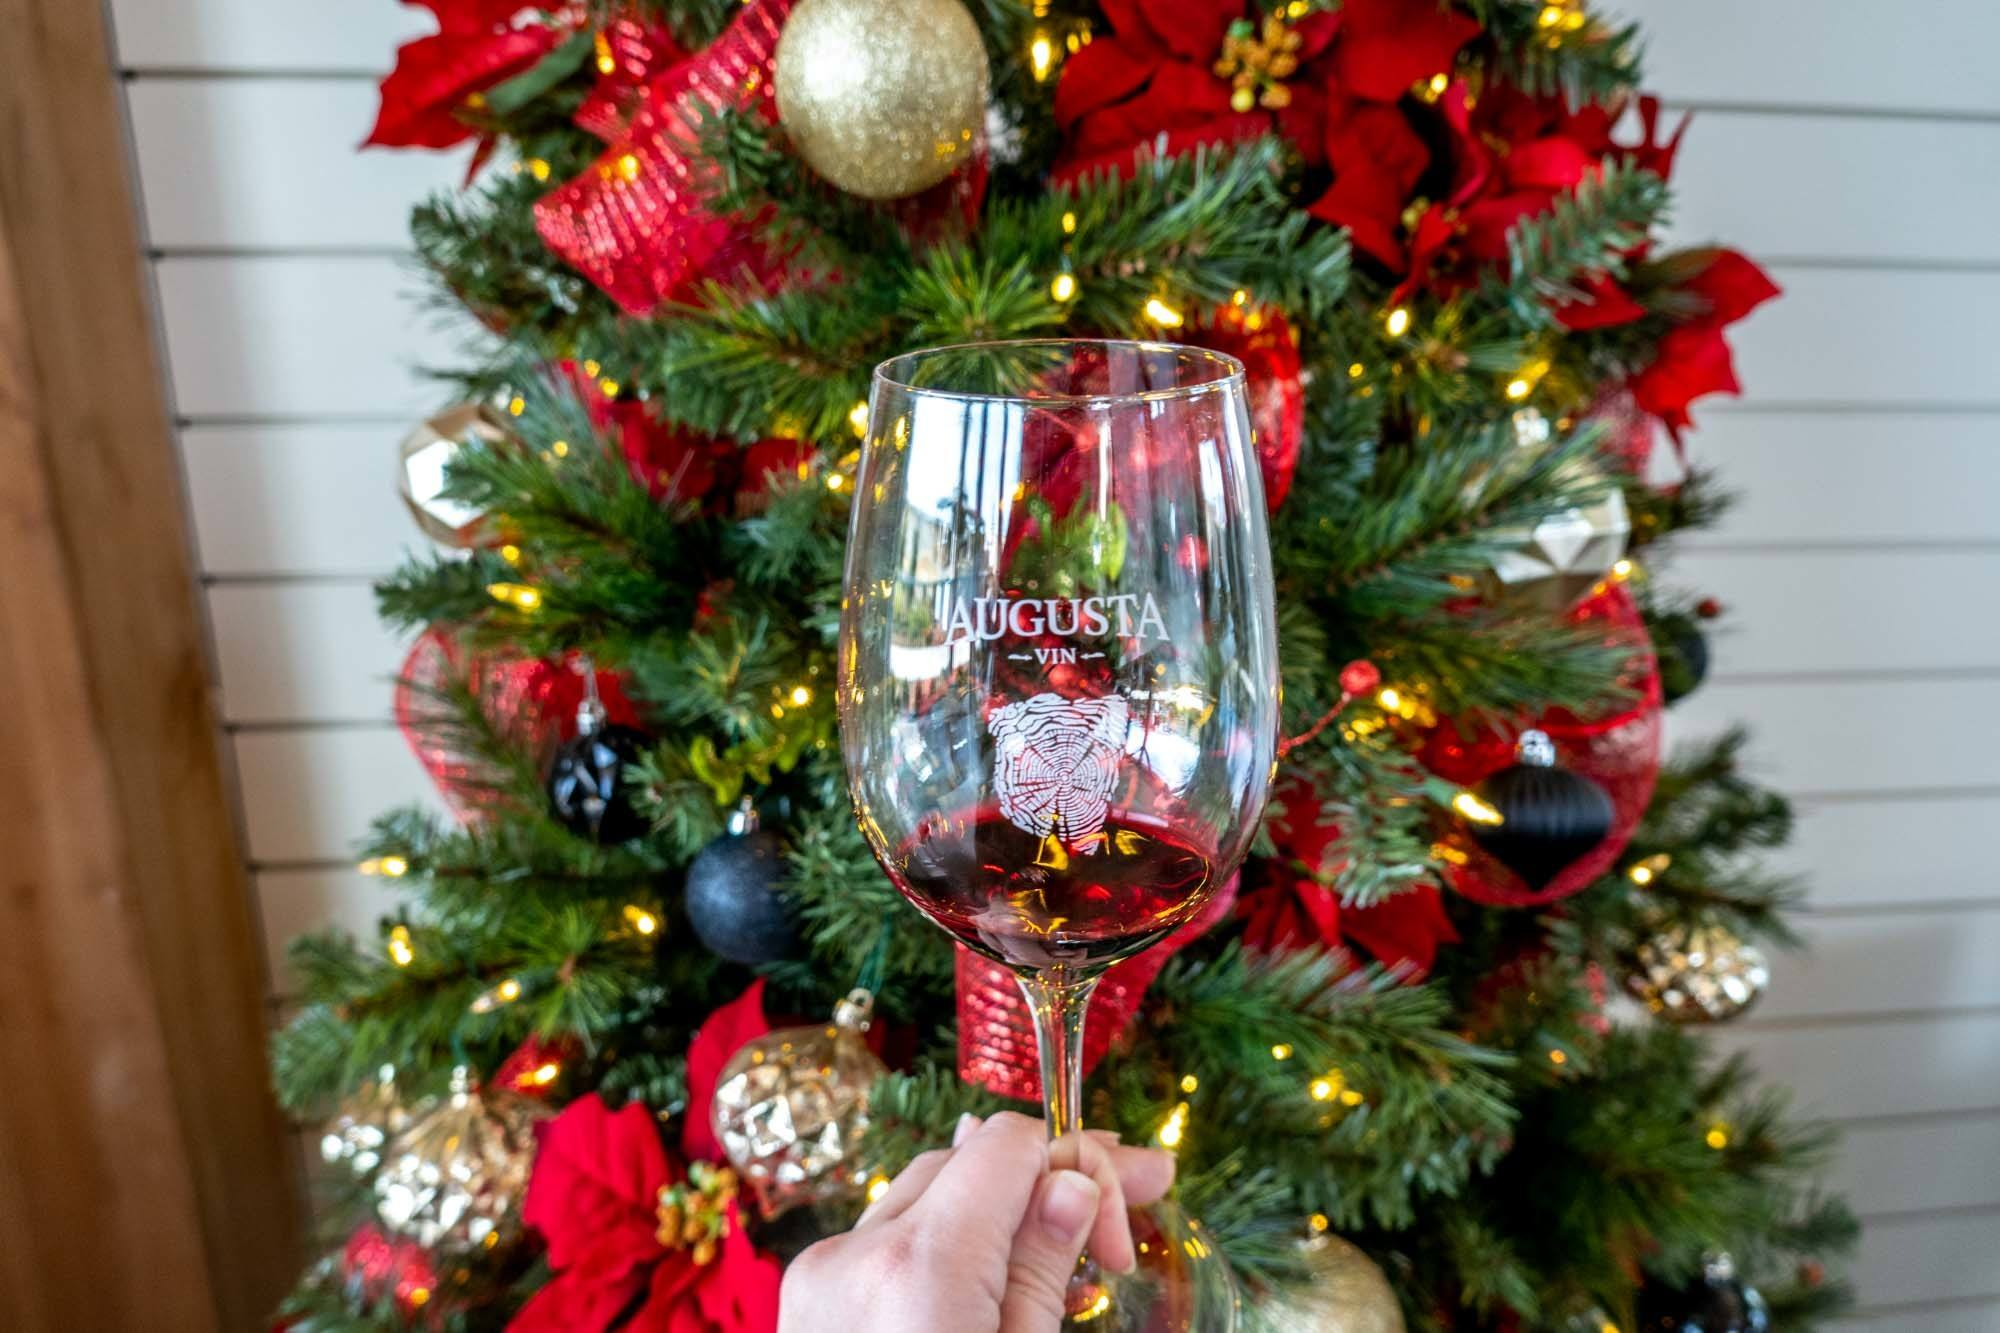 """A wine glass labeled """"Augusta Vin"""" in front of a Christmas wreath"""